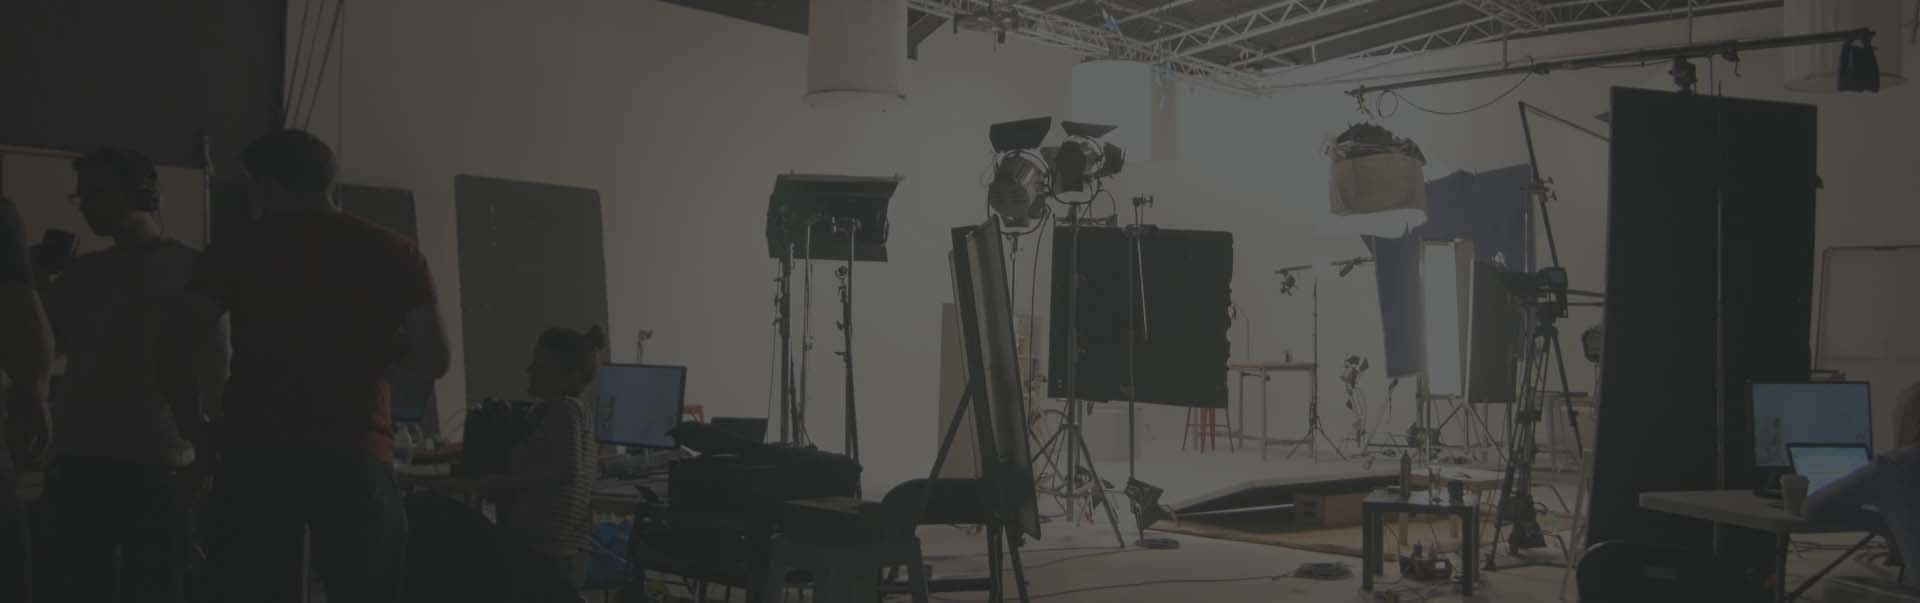 product filming, white studio speaker videos